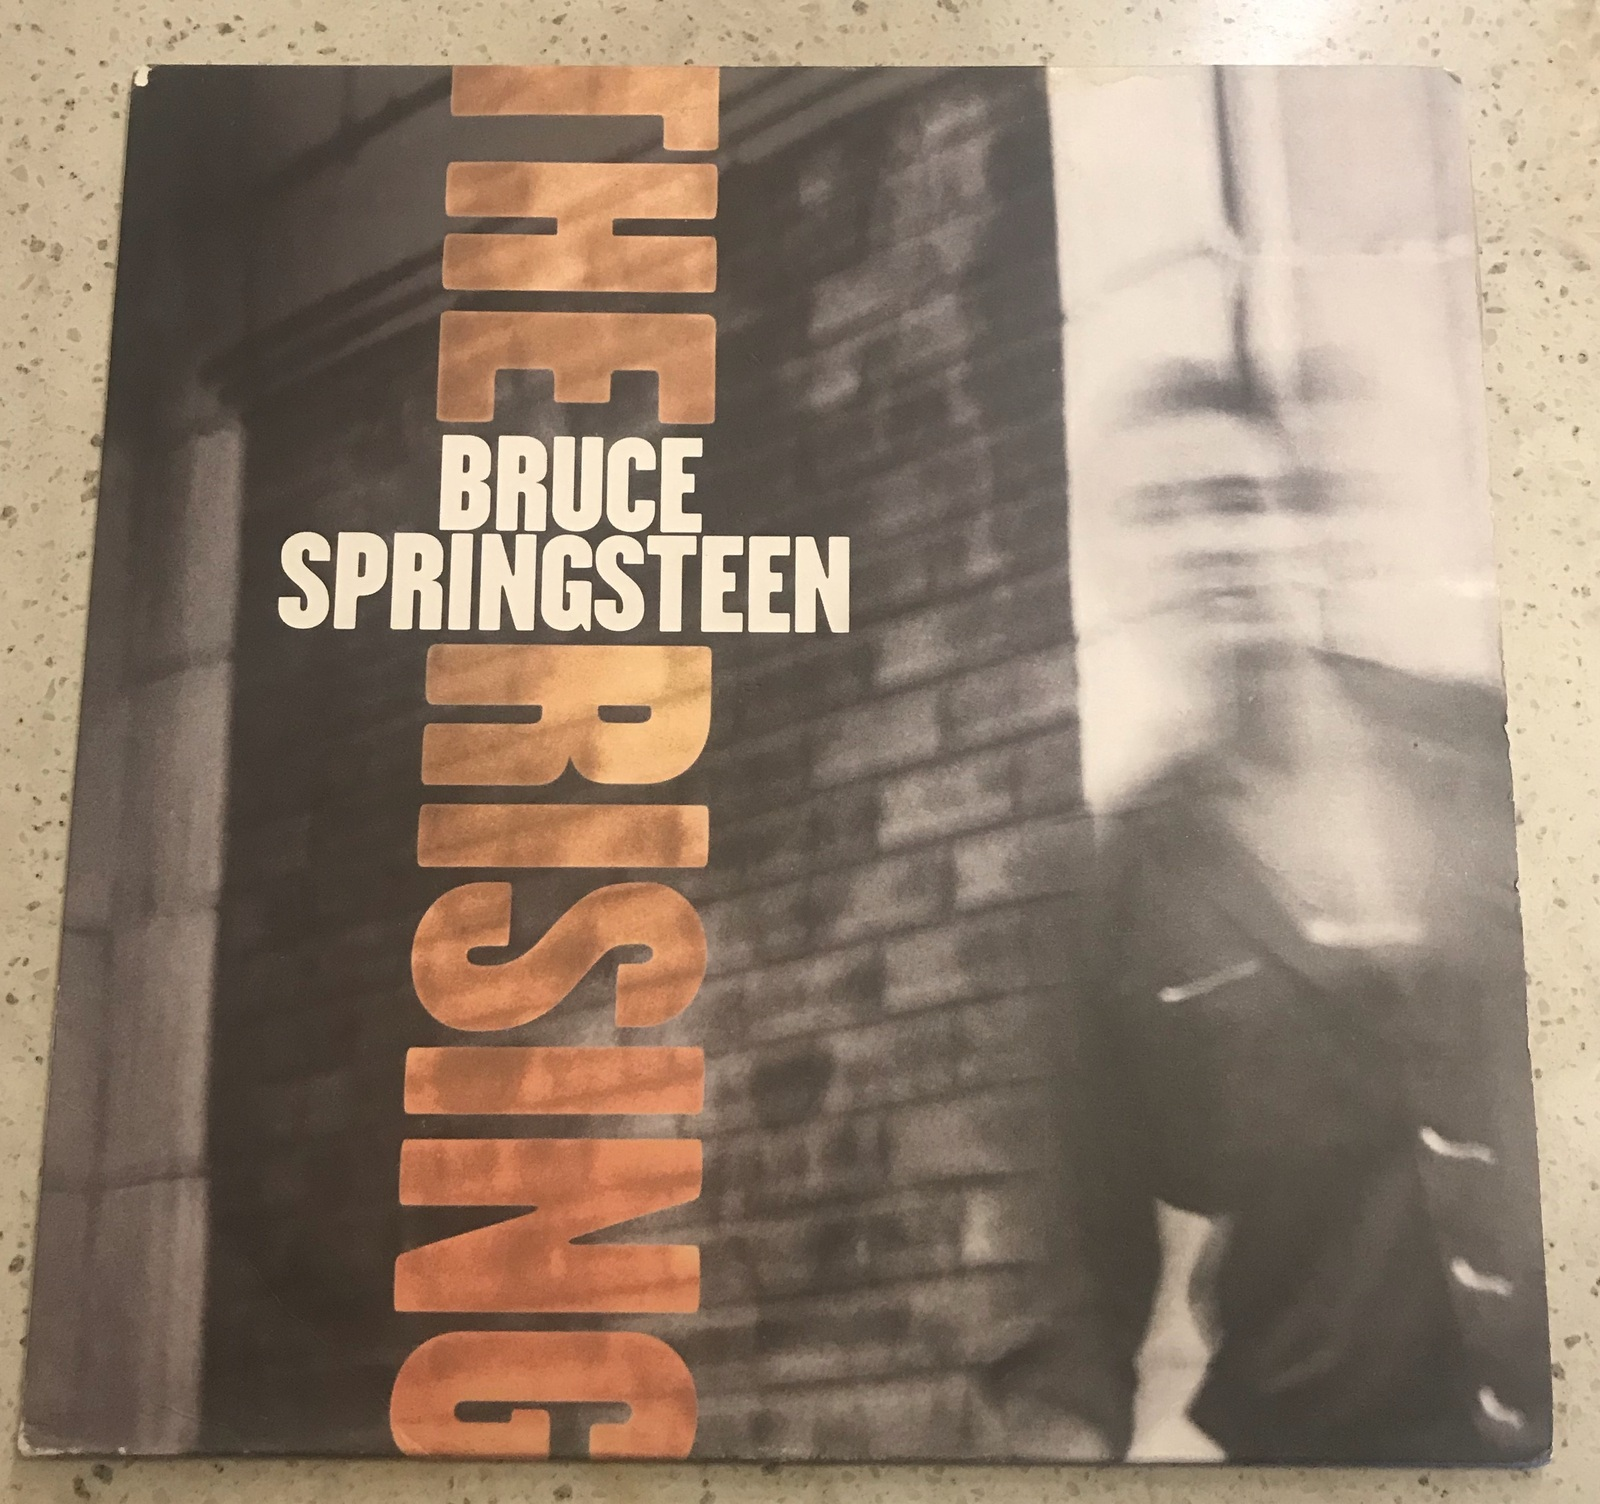 Bruce Springsteen The Rising Us Vinyl 2 Lp For Sale Online